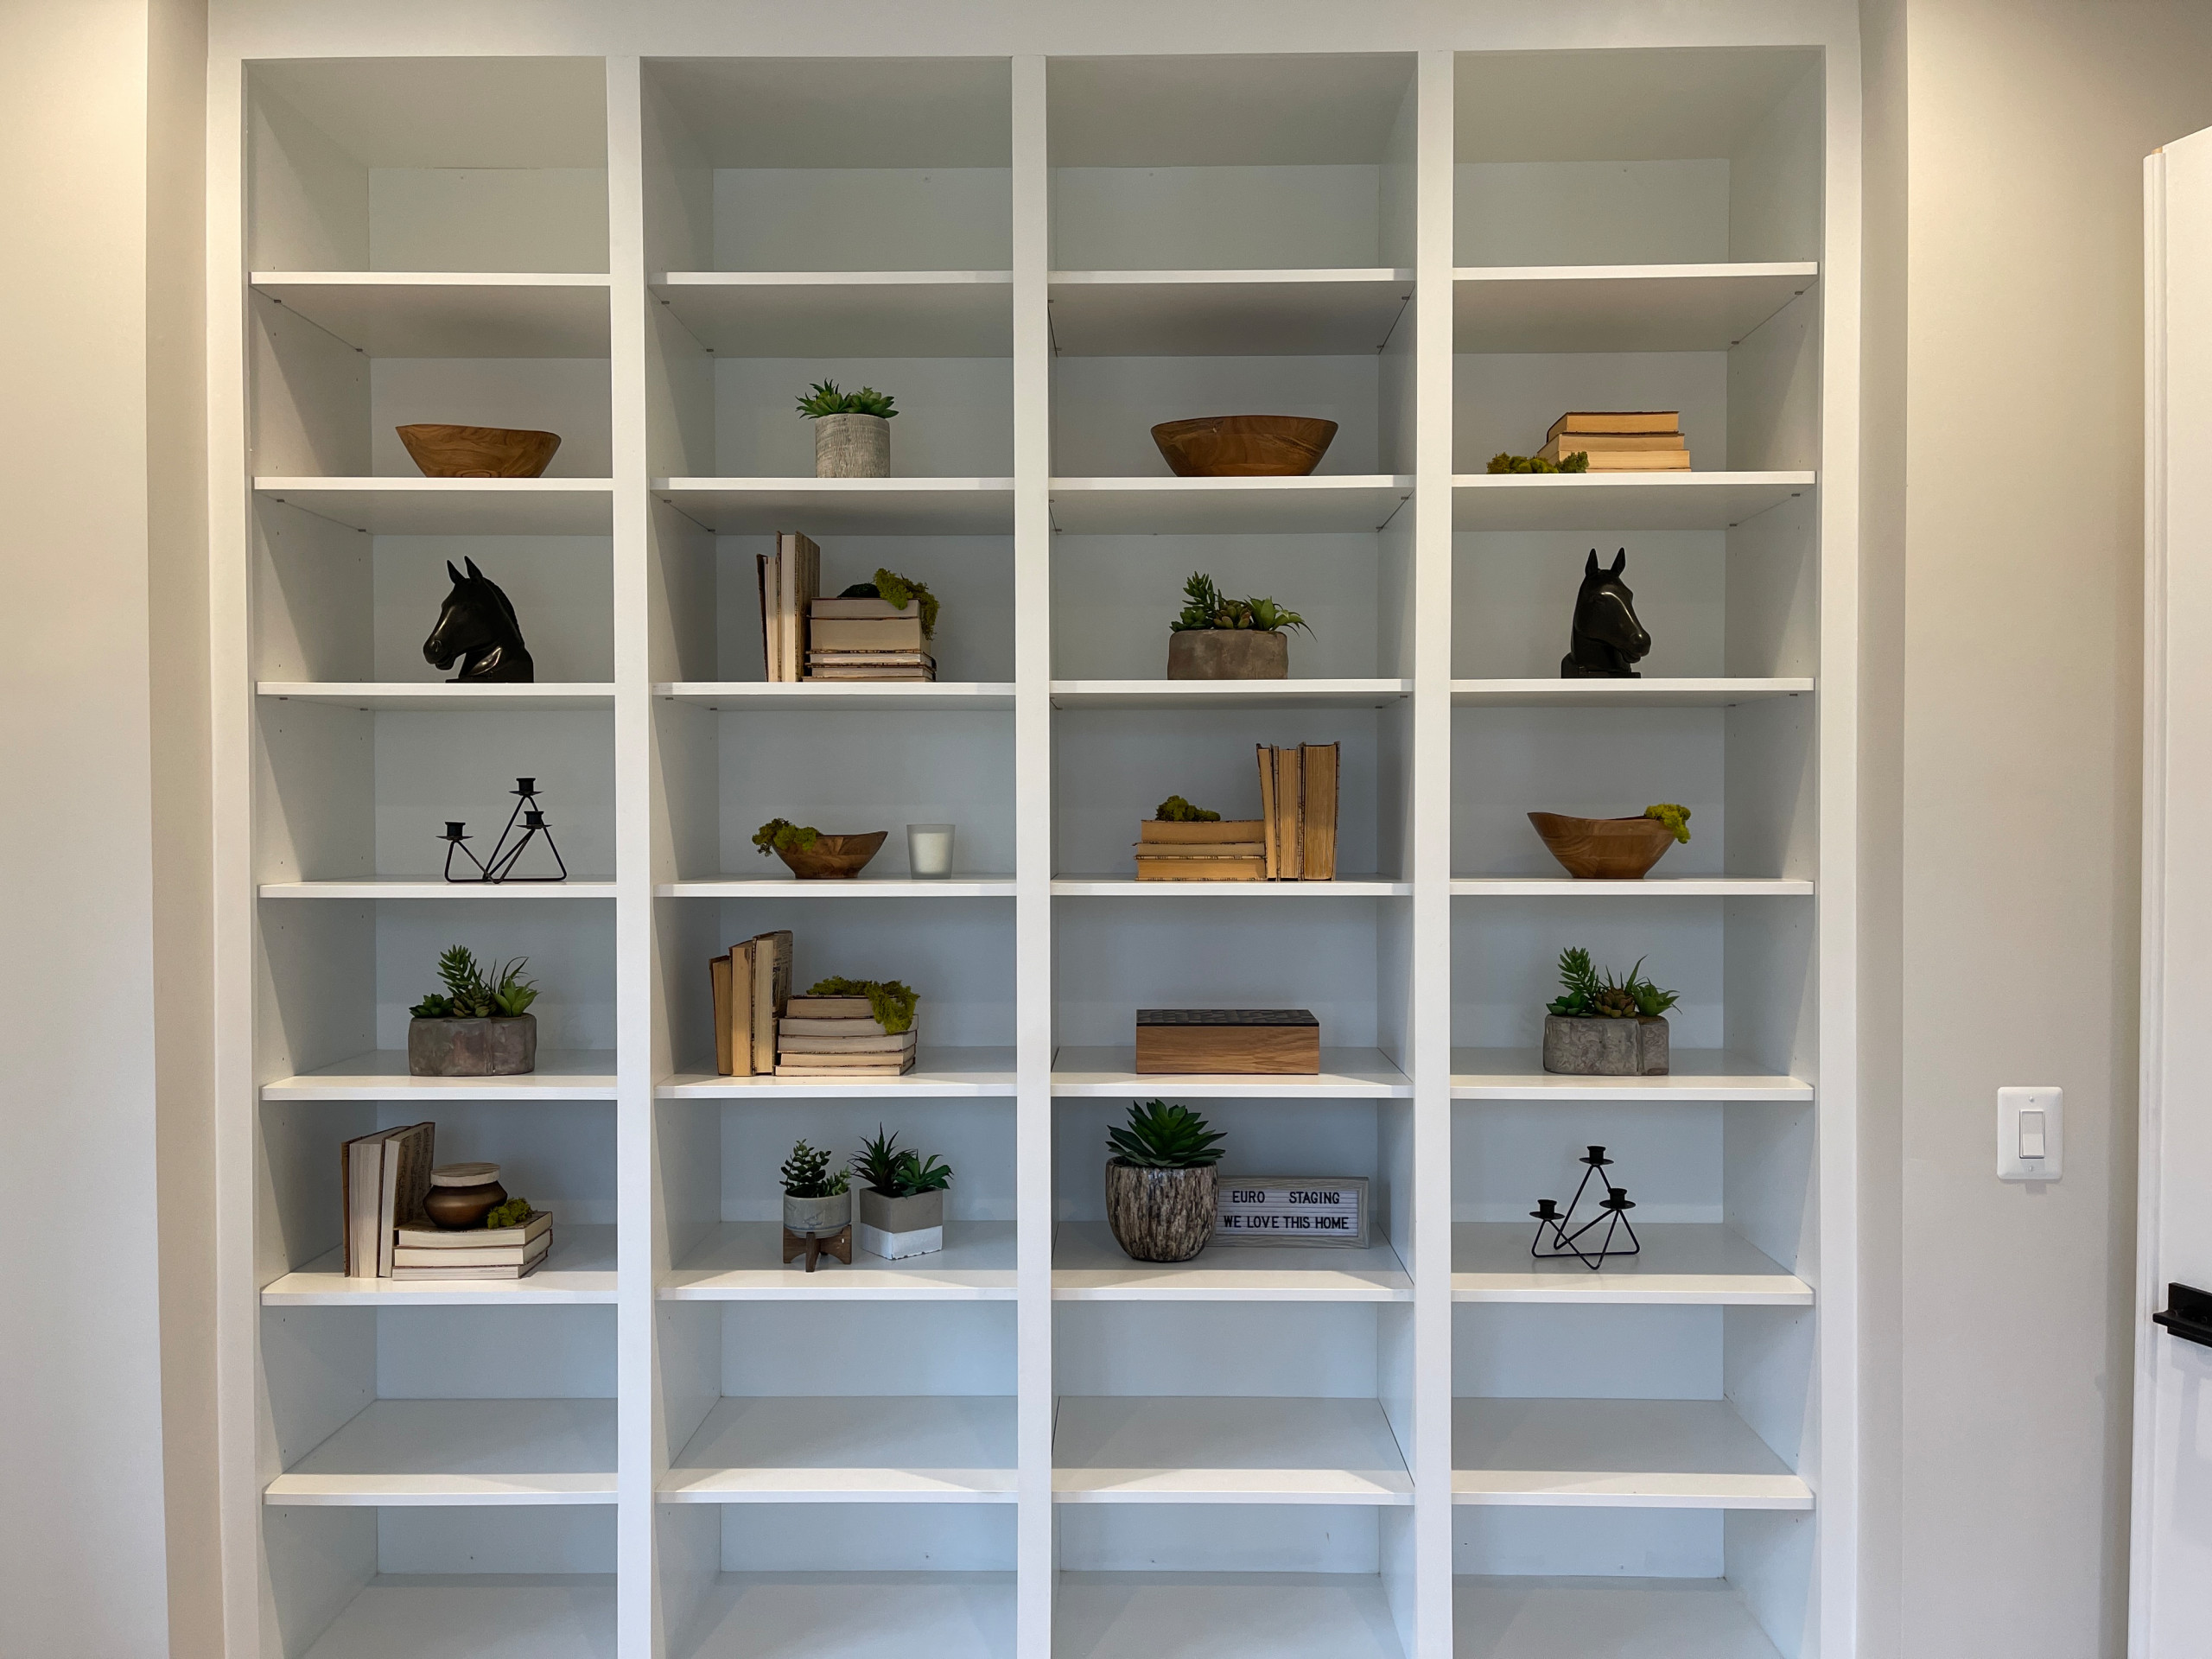 Shelving Decor in New Construction